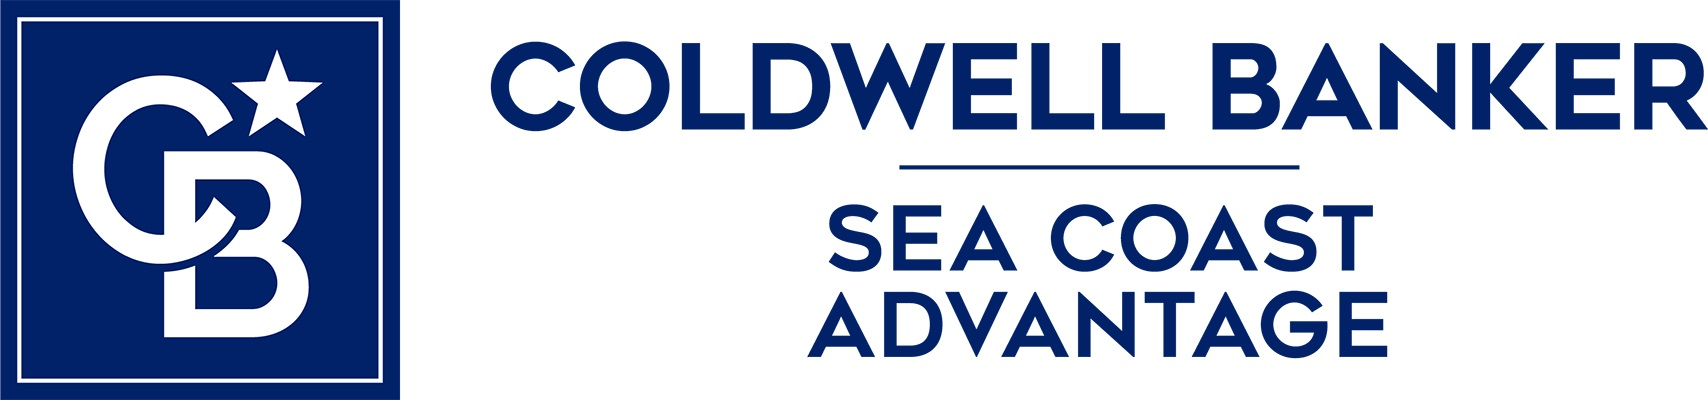 Steve Crager - Coldwell Banker Sea Coast Advantage Realty